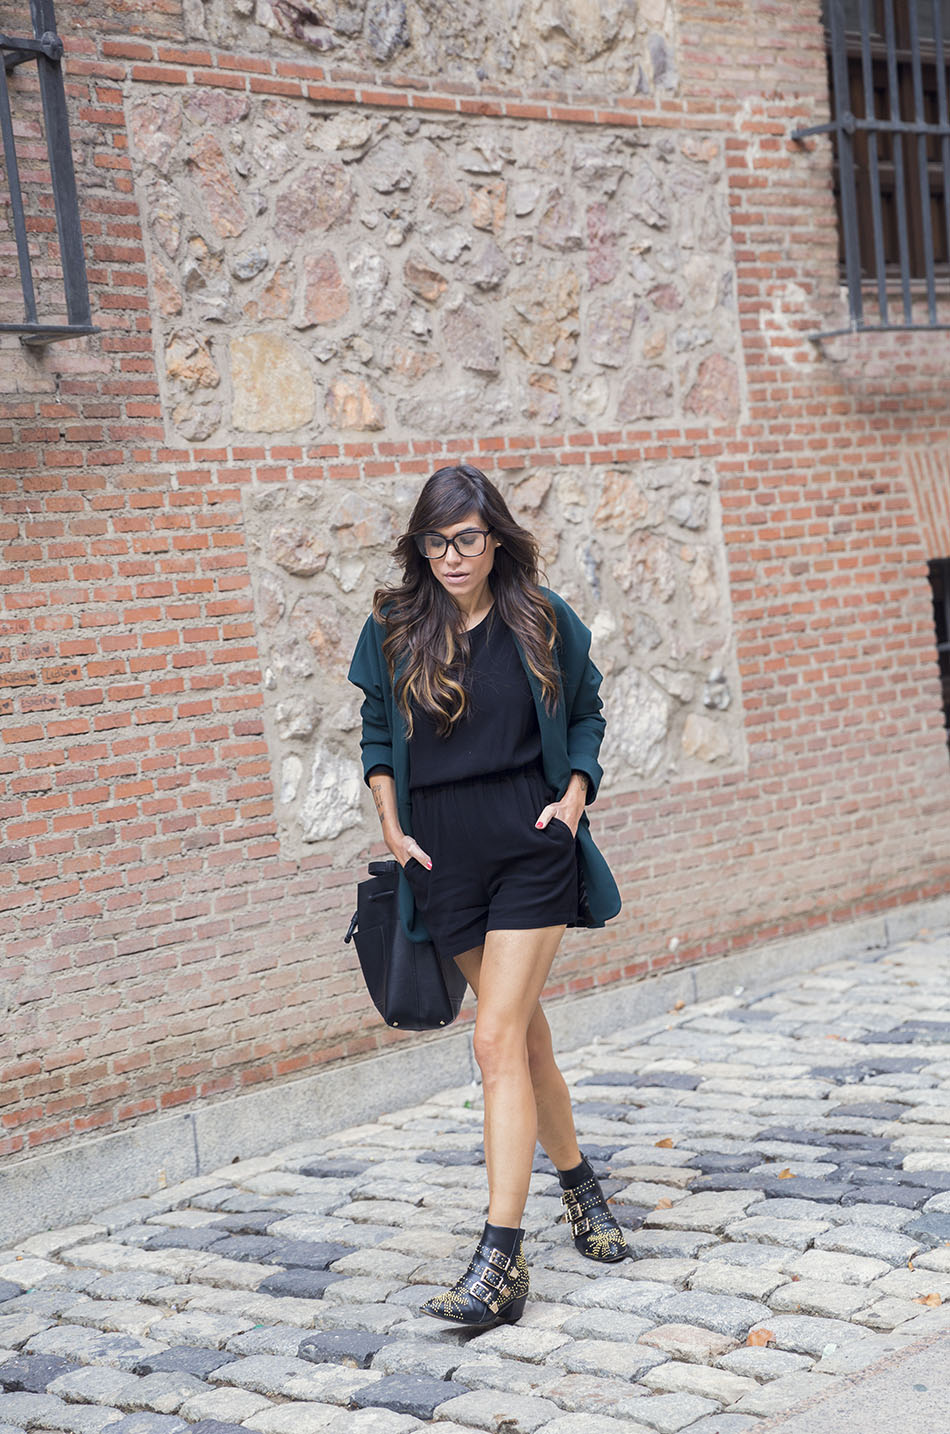 street-style-october-2016-outfits-review-barbara-crespo-10